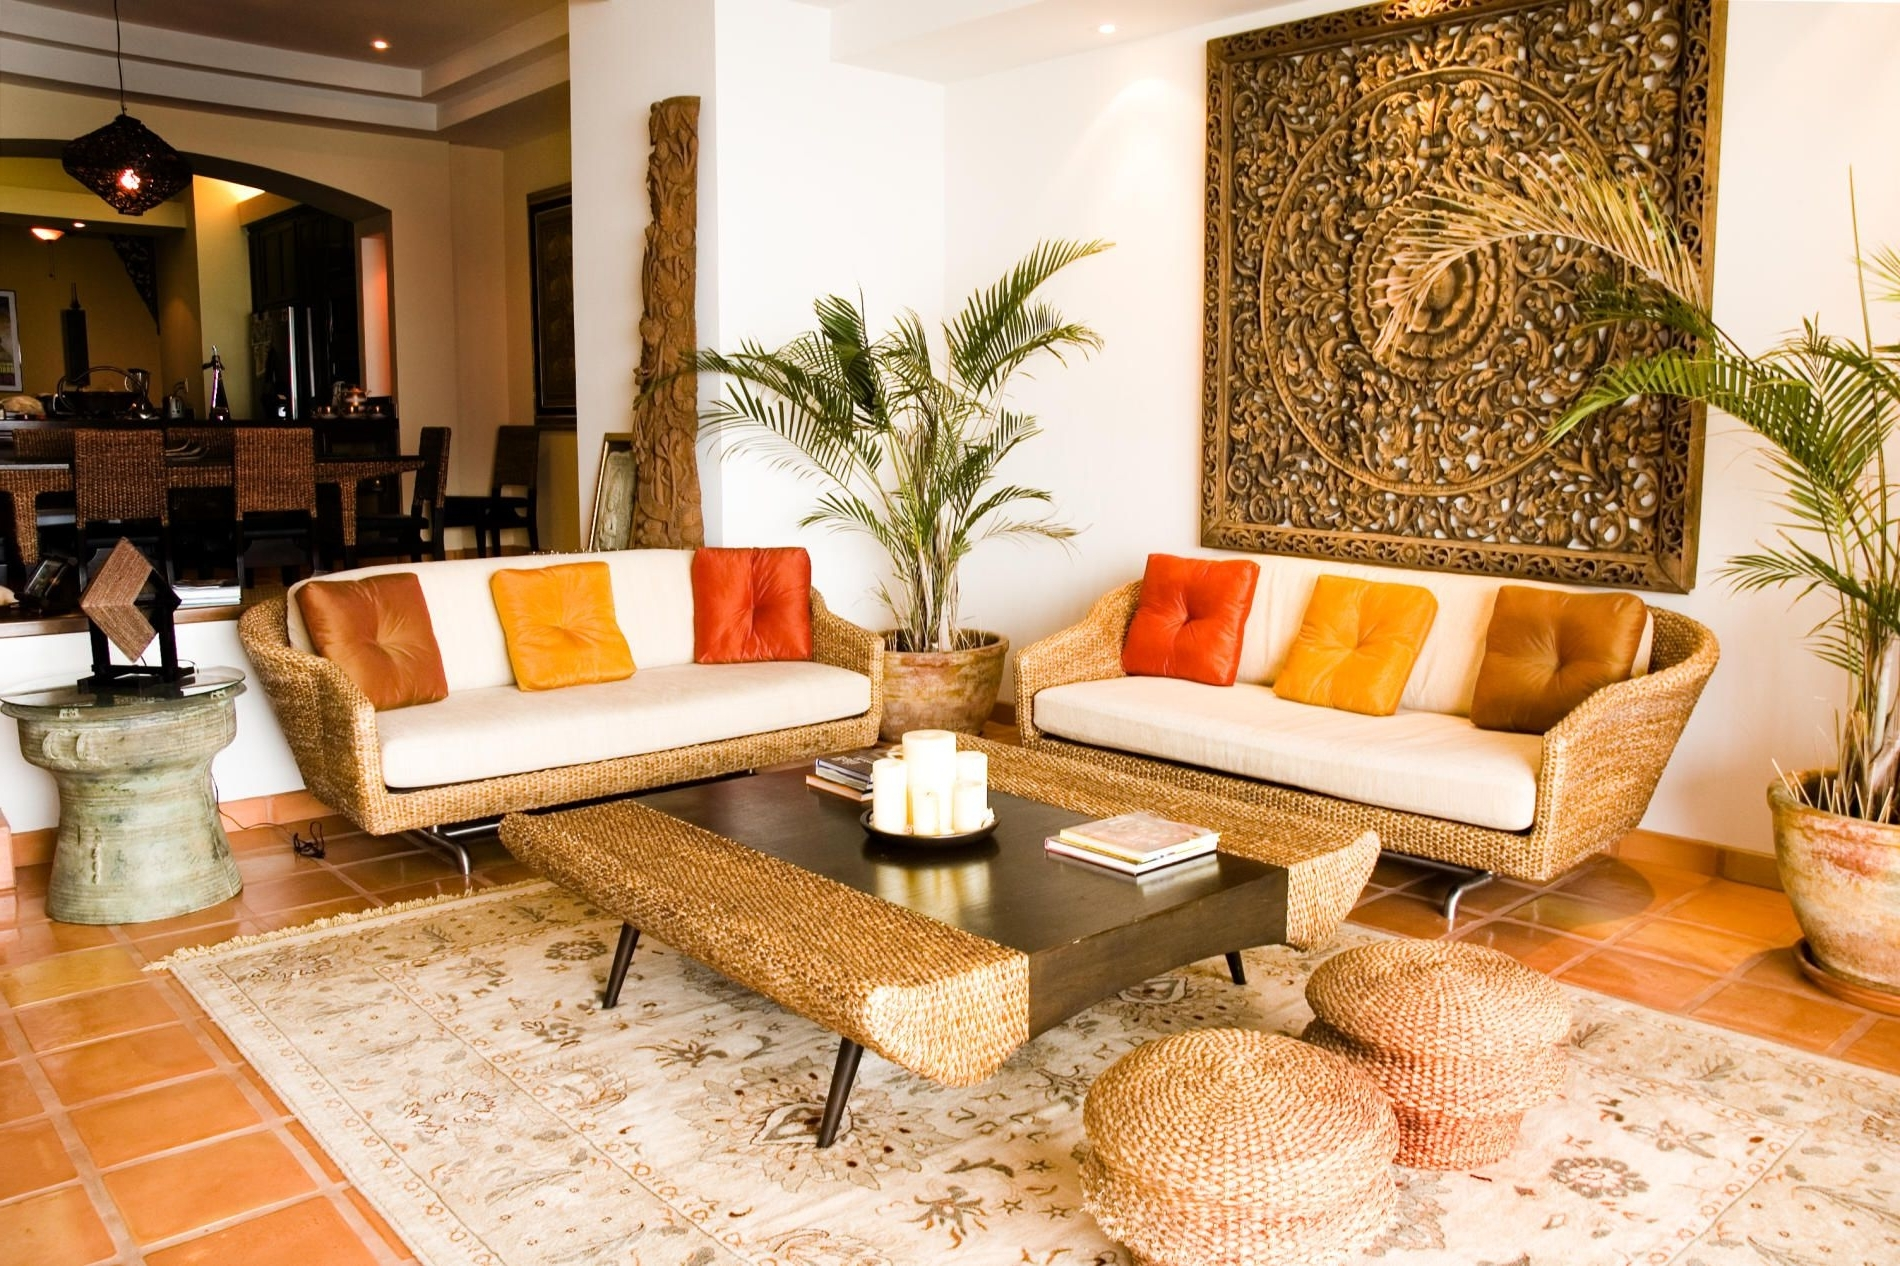 Themed Living Room Tropical Decoration Ideas | Tropical Hawaiian Decor Living Room